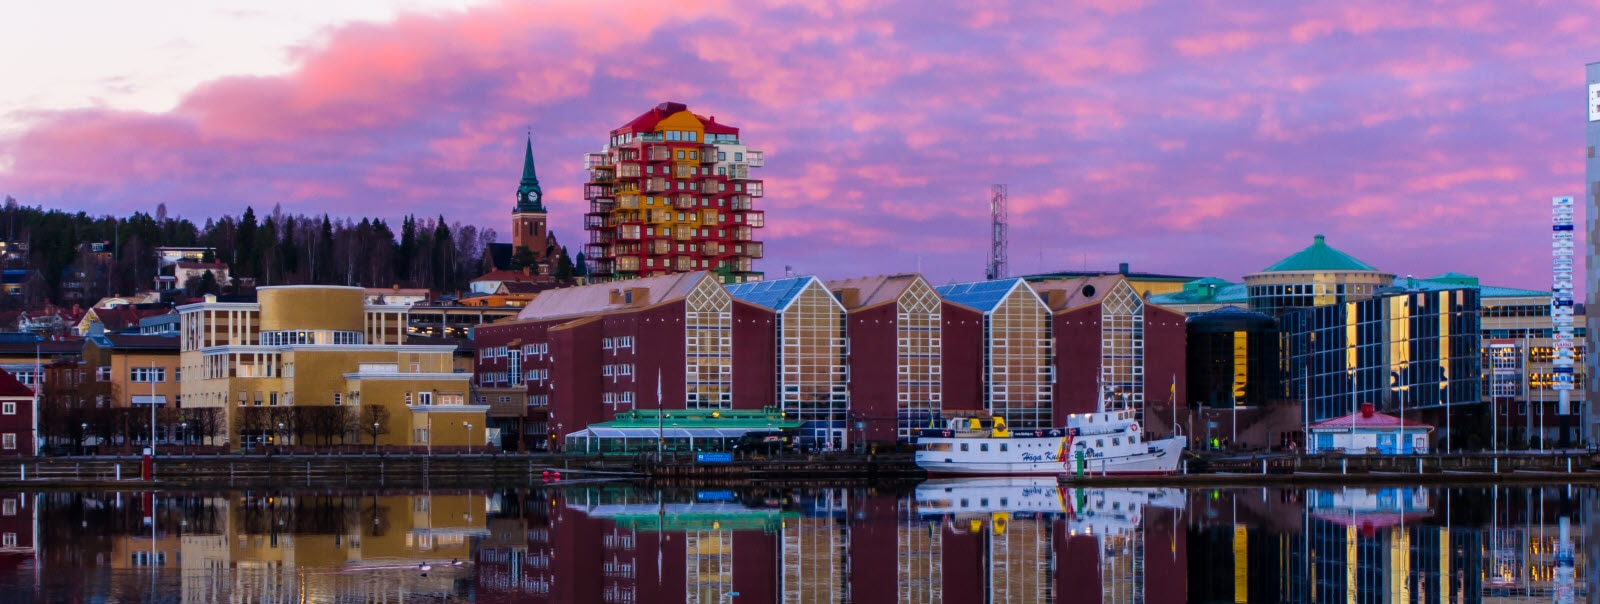 ornskoldsvik-city-sunset.jpg